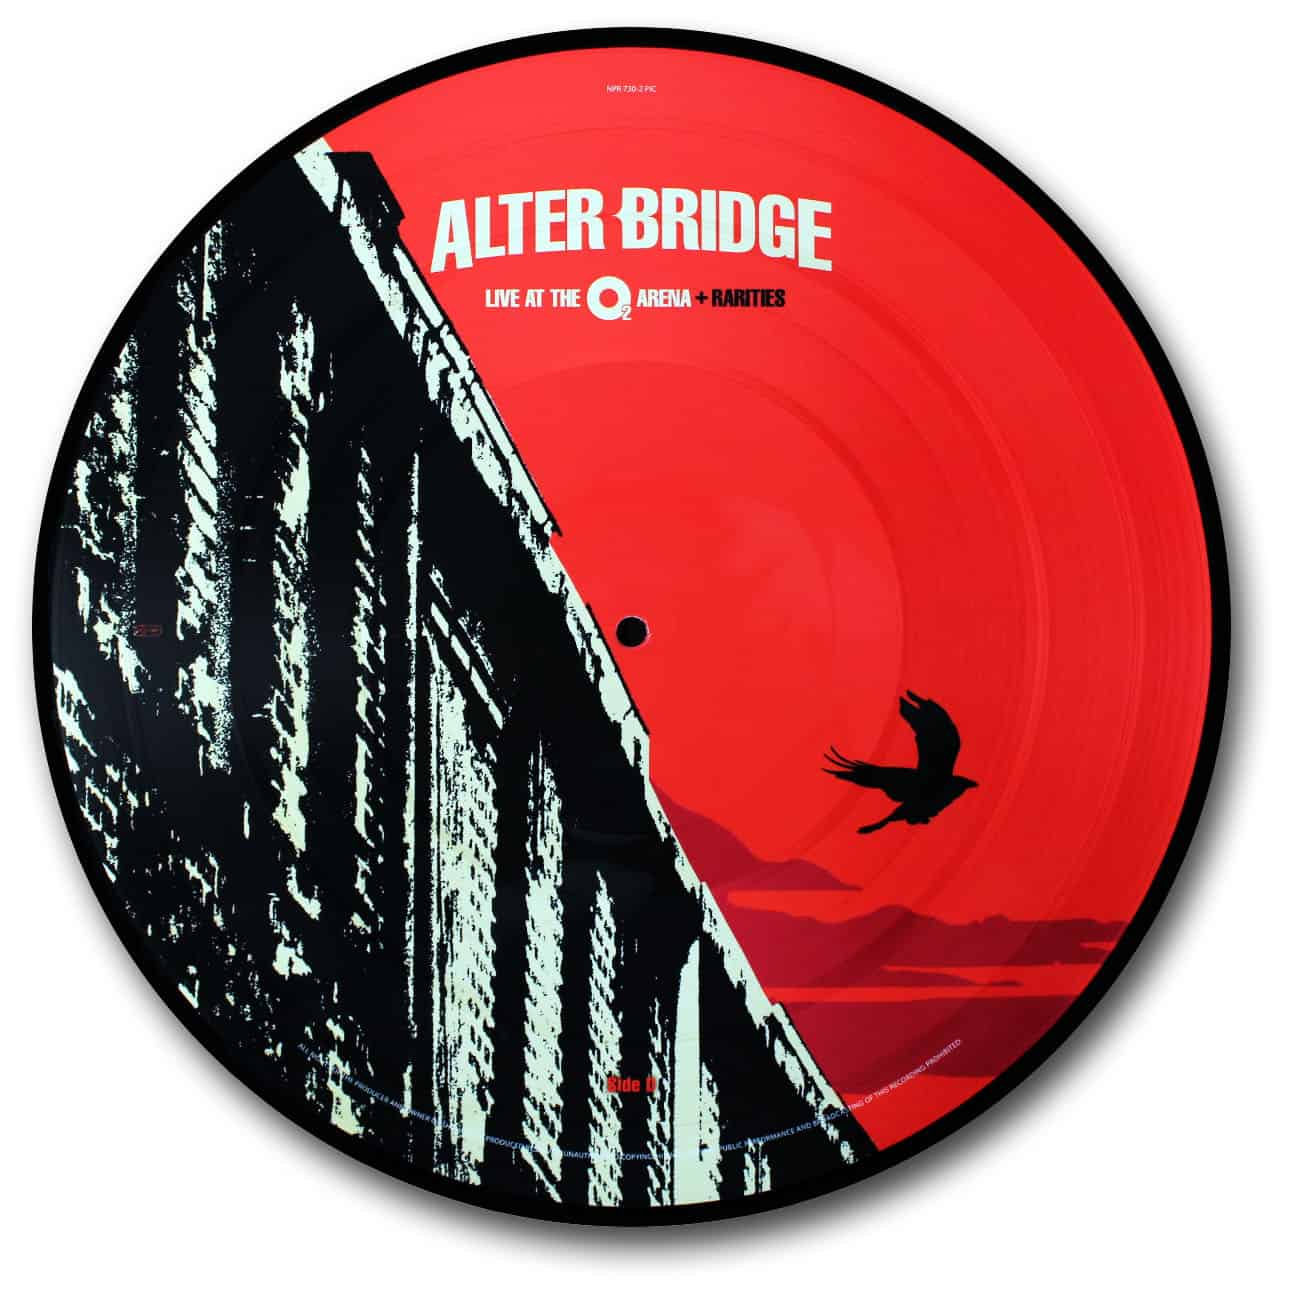 Alter Bridge, Live at the O2 Arena Picture Disc